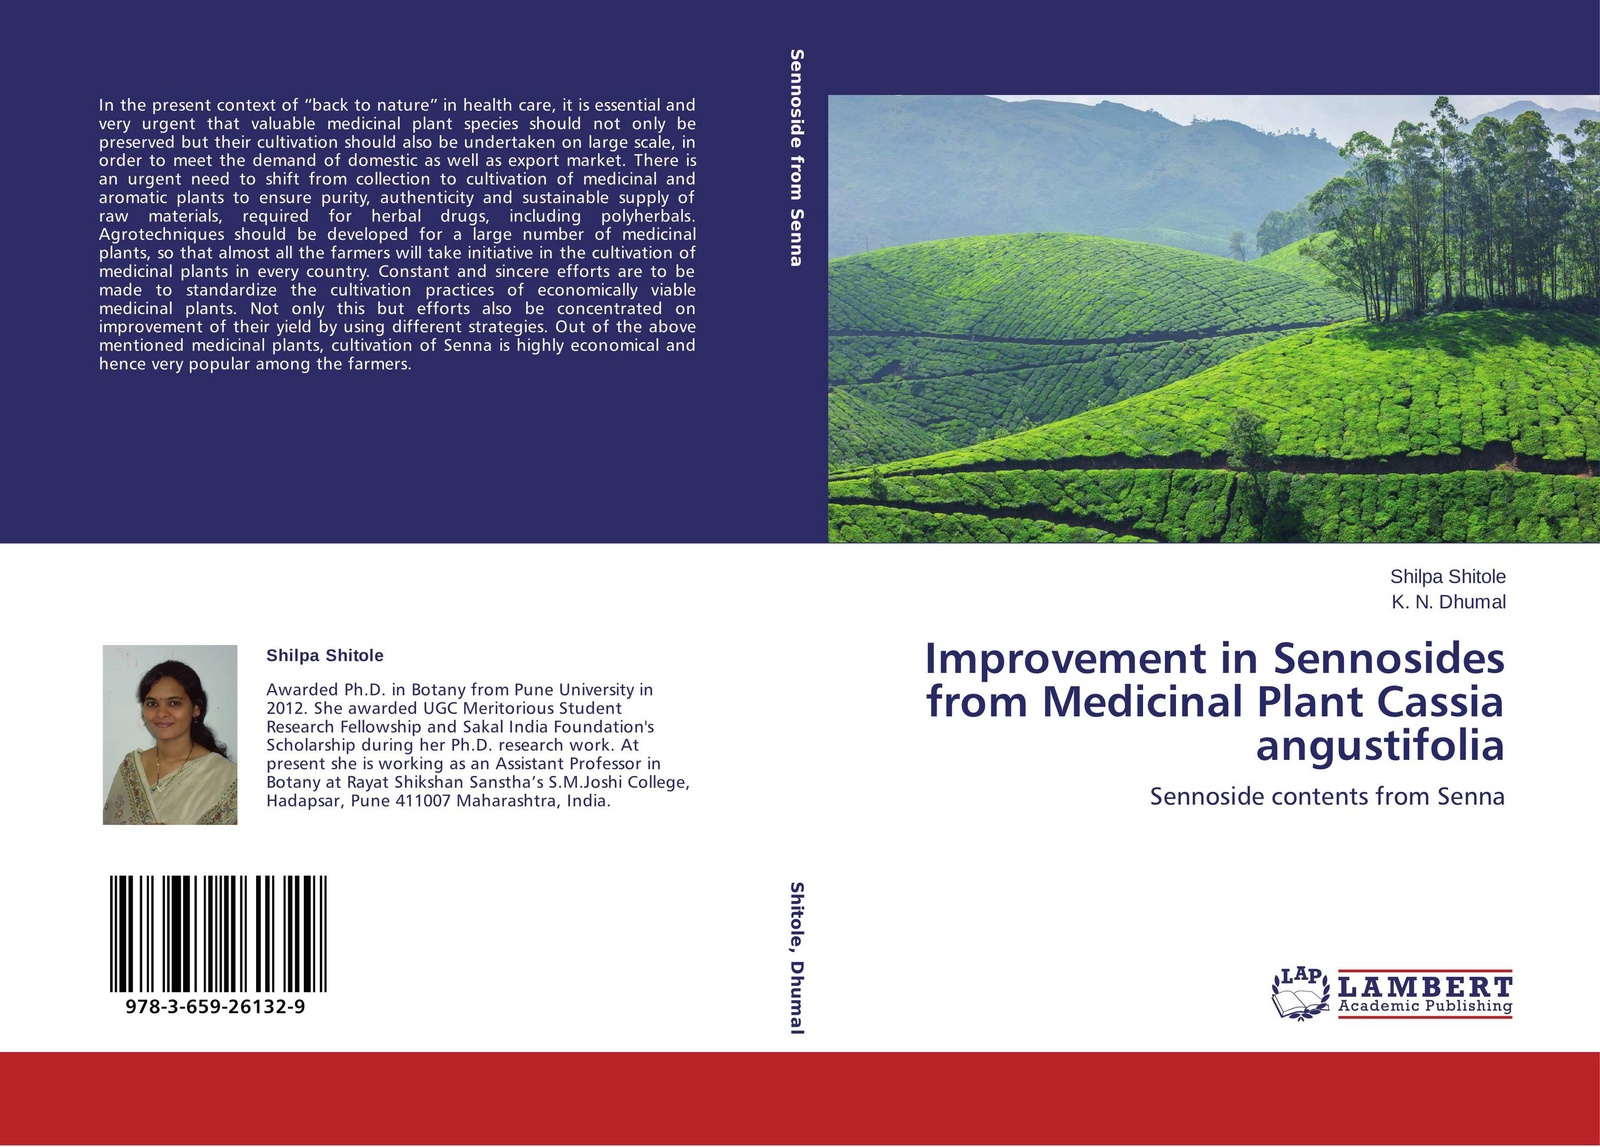 Shilpa Shitole and K. N. Dhumal Improvement in Sennosides from Medicinal Plant Cassia angustifolia цена